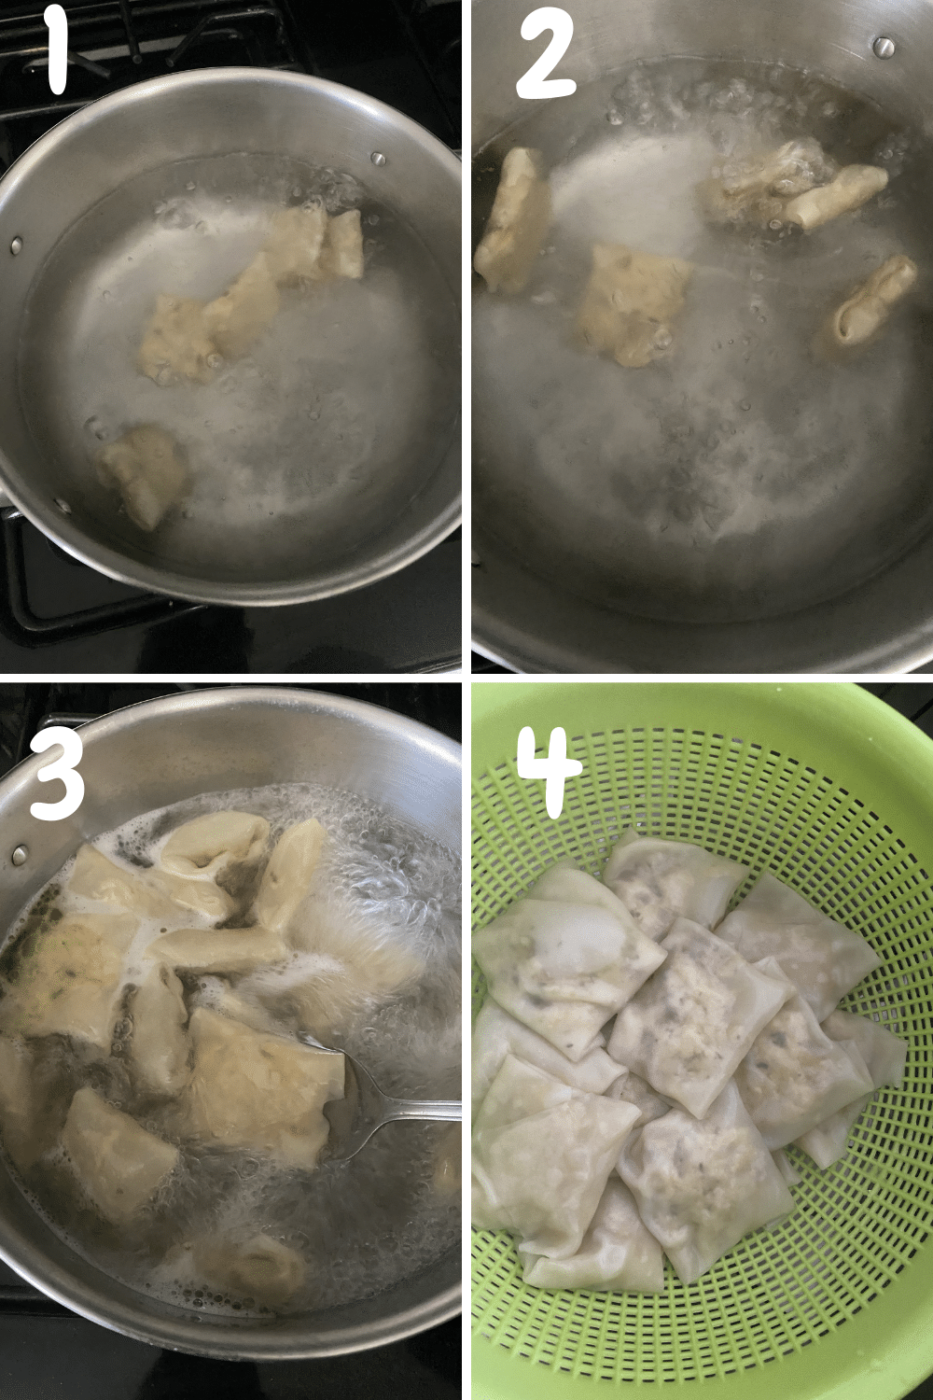 Collage of 4 images. First image is the wontons added to hot water, 2nd image is the wontons rising to the top, 3 image is the raviolis being removed using strainer and last image is the ravioli in a colander